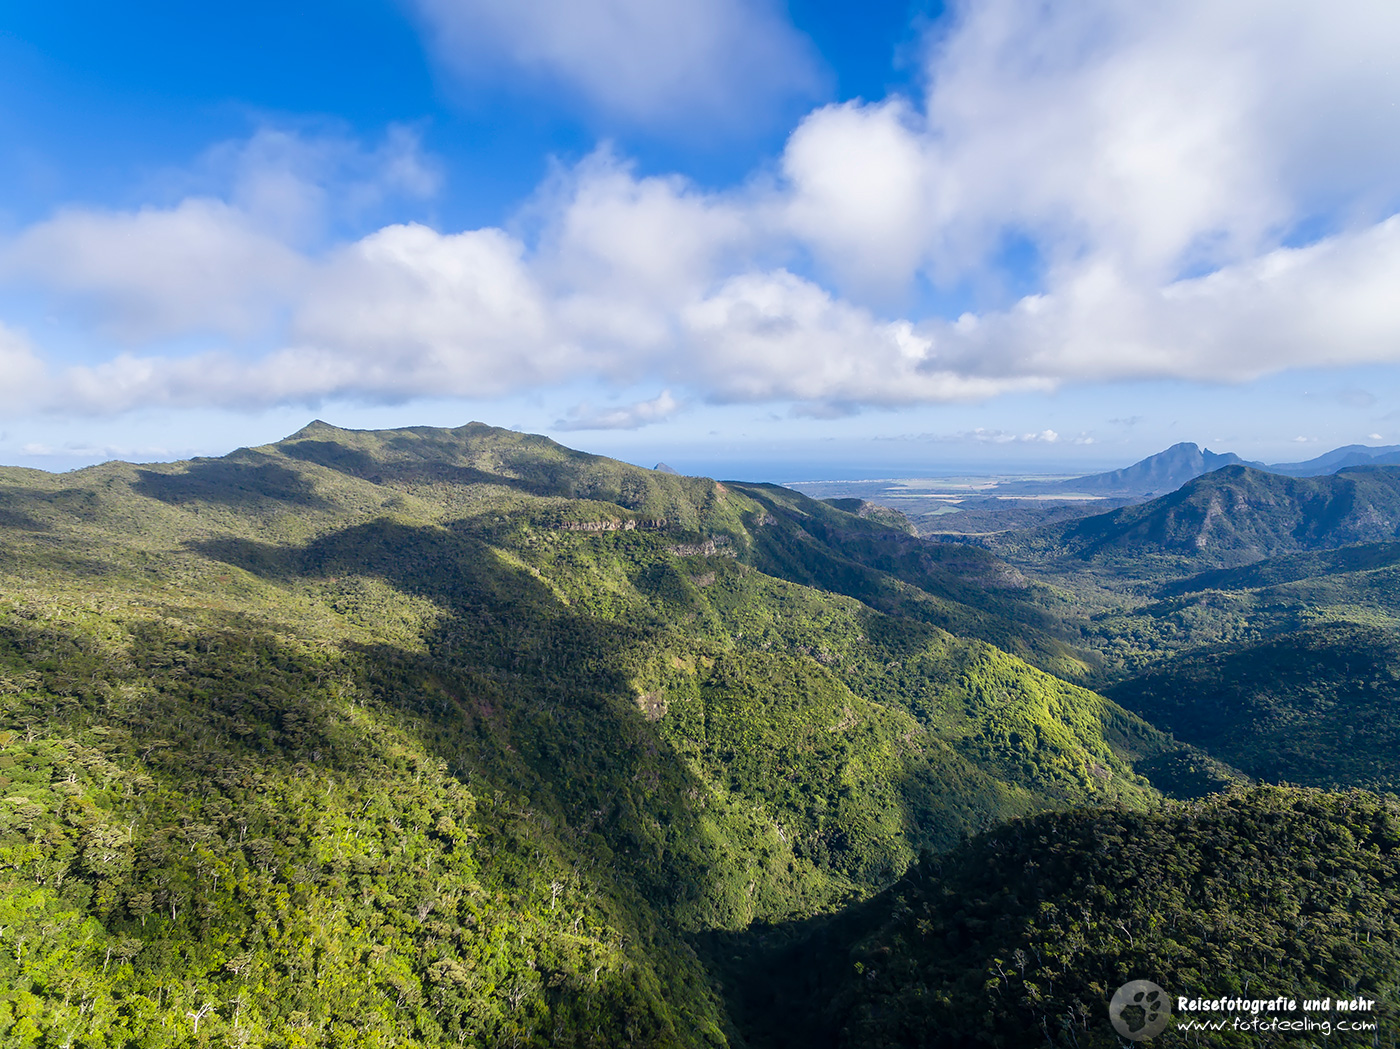 Black River Gorges Nationalpark vom Gorges Viewpoint, Mauritius